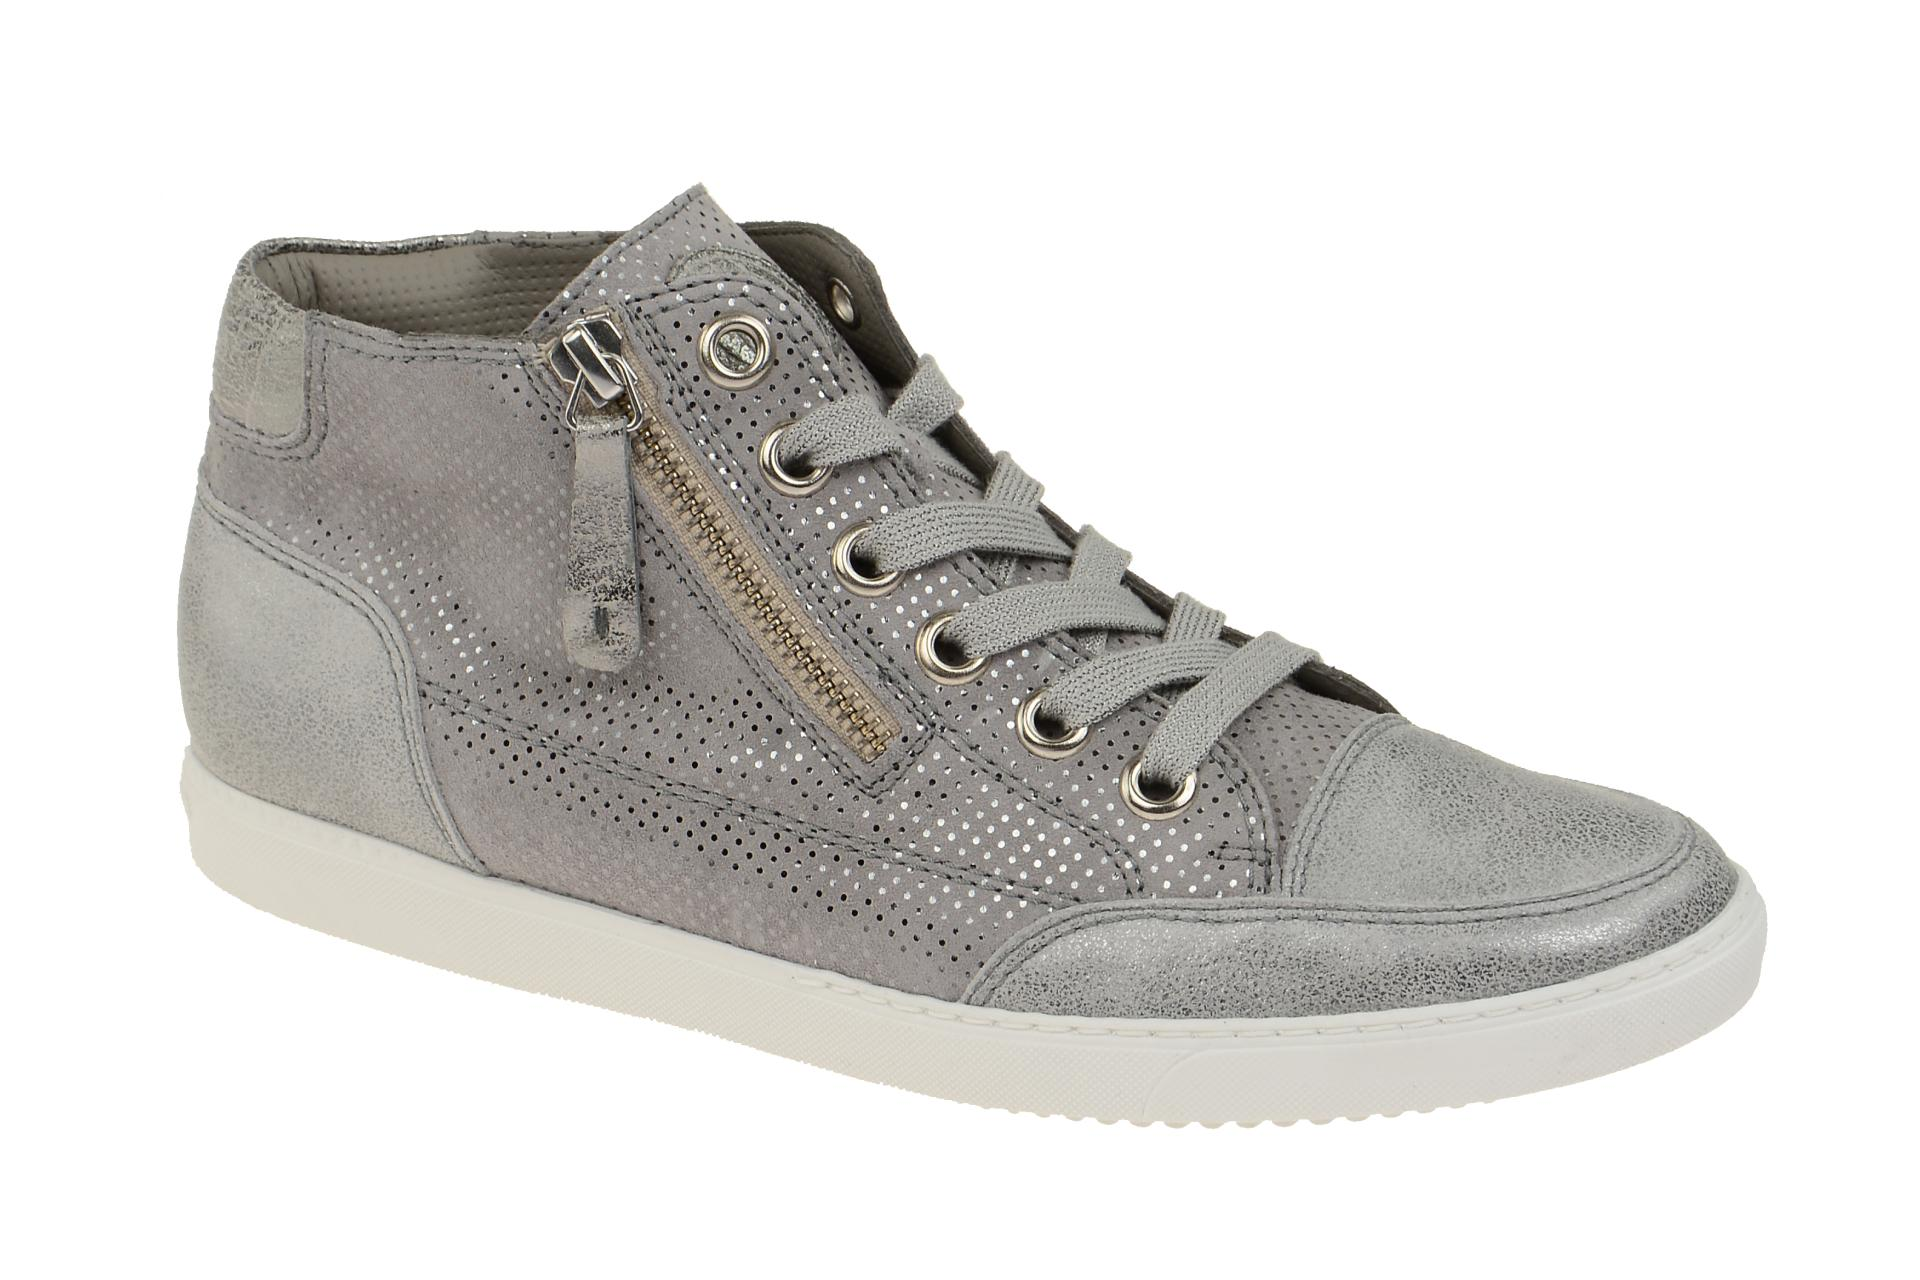 Paul Green Sneakers Schuhe braun 4242